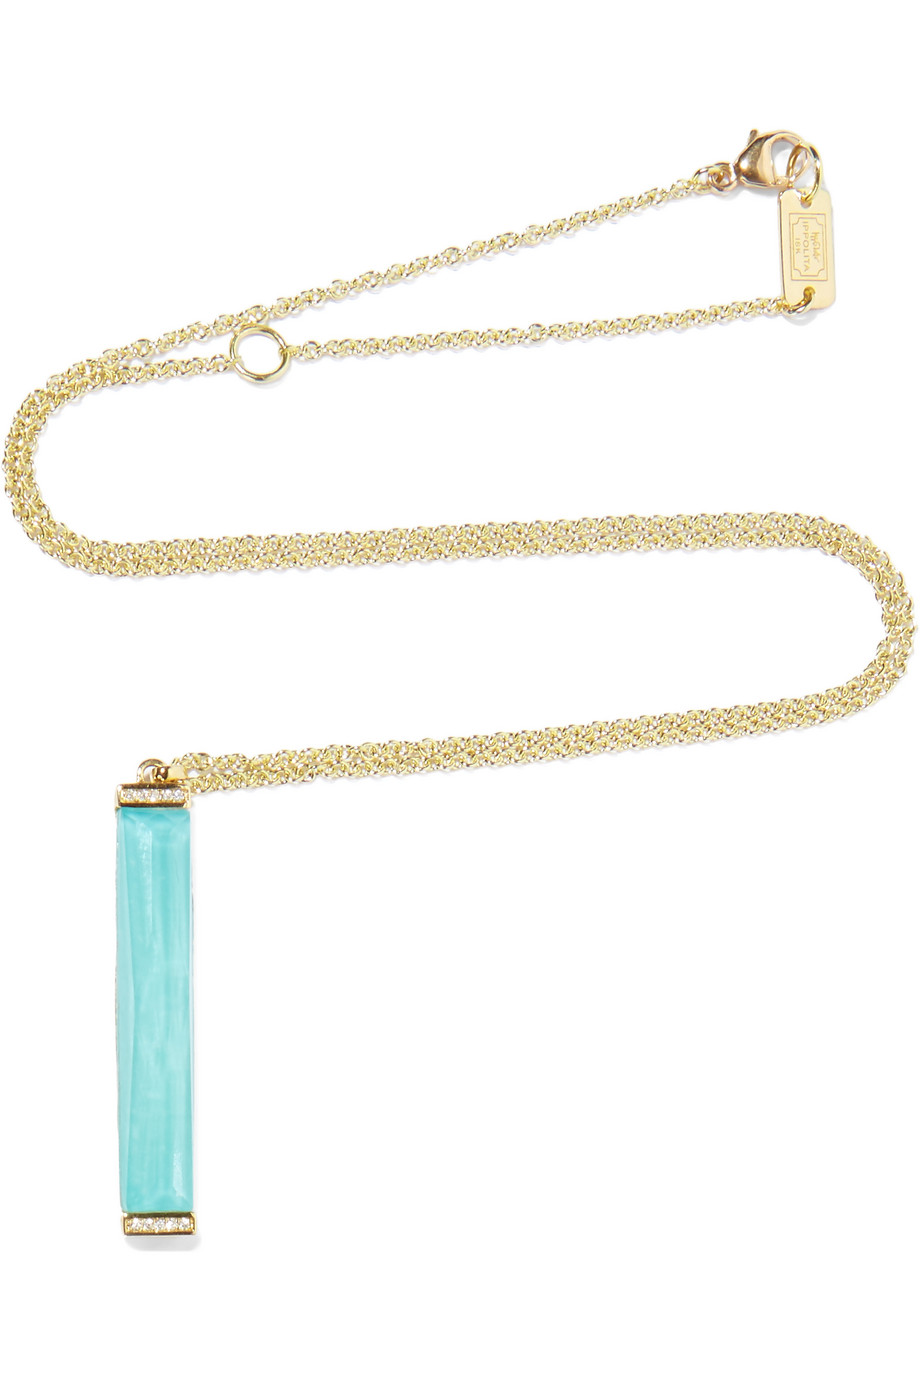 Ippolita Rock Candy 18-Karat Gold, Turquoise and Diamond Necklace, Gold/Turquoise, Women's